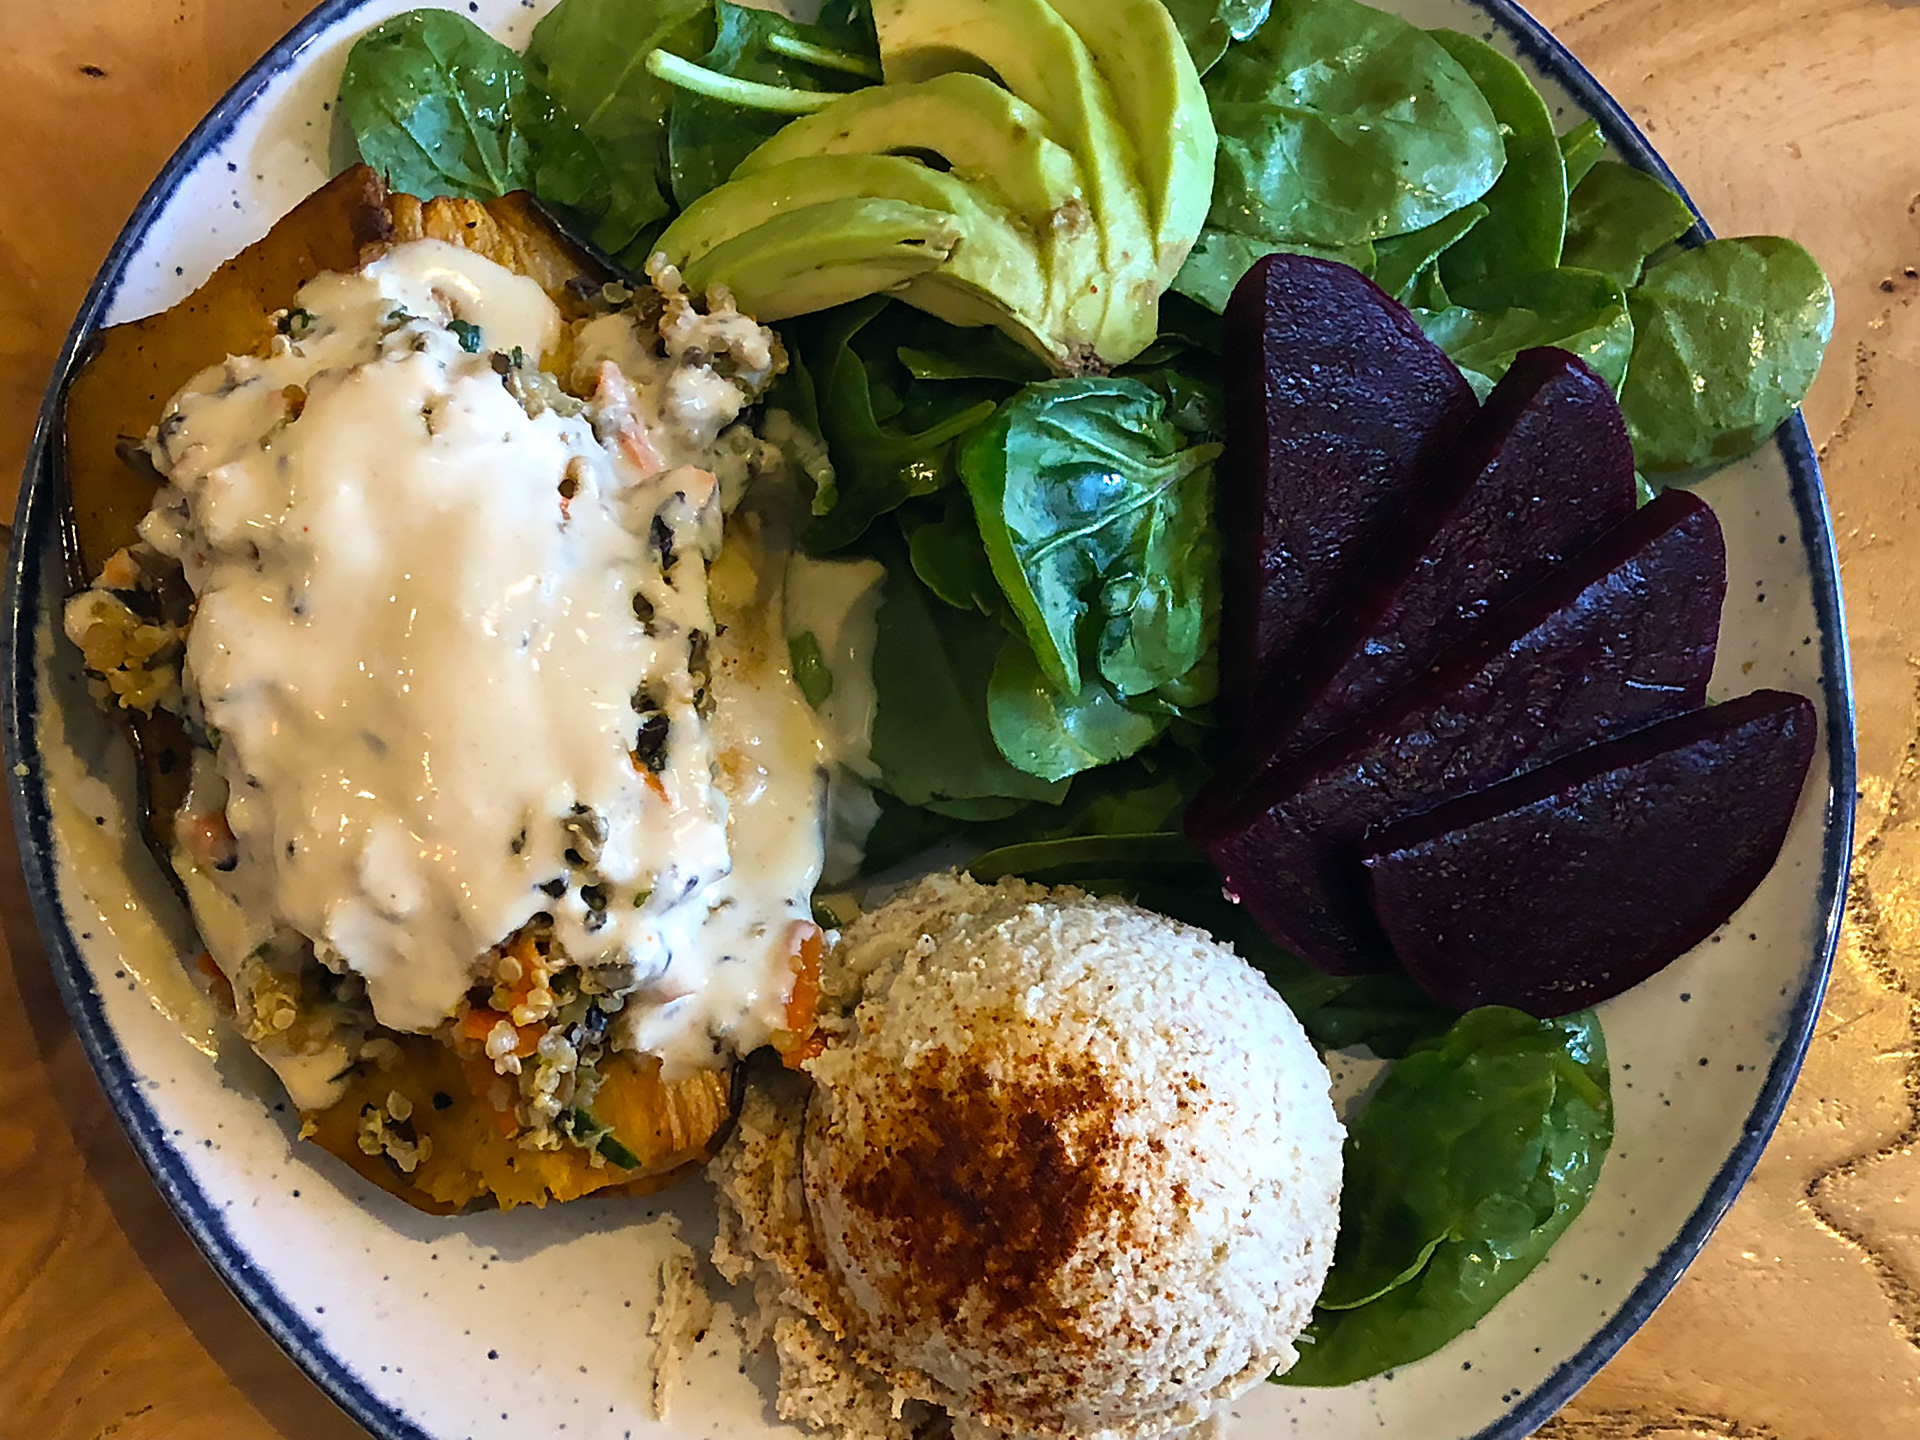 Beloved's Stuffed Delicata Squash ($14): roasted delicata squash stuffed with homemade superfoods quinoa salad, topped with tahini dressing, spinach salad, avocado, beets and hummus.